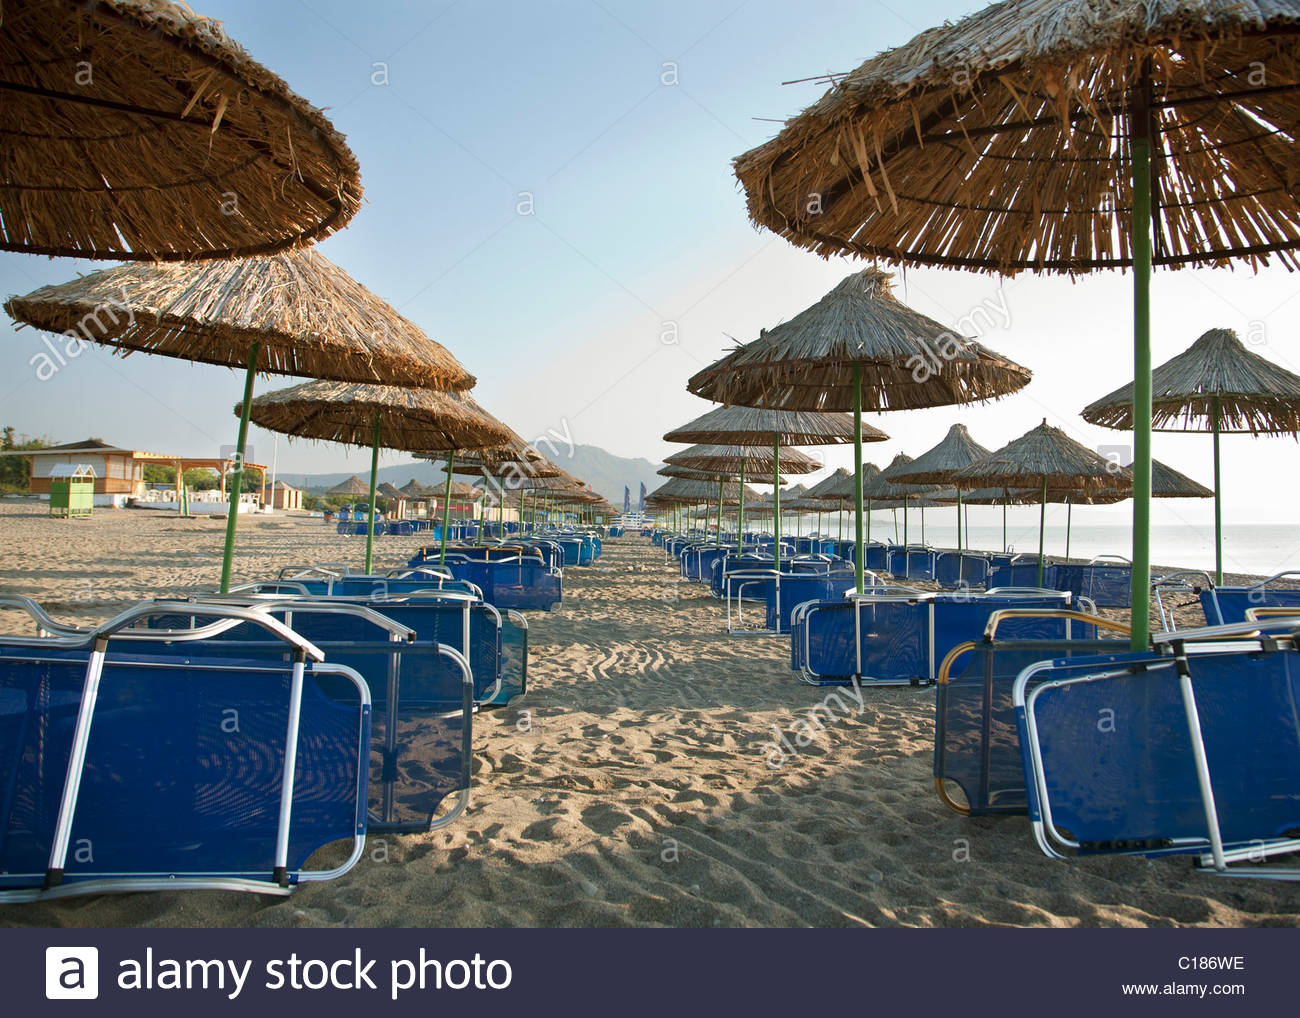 Parasols and sun loungers on beach - Stock Image